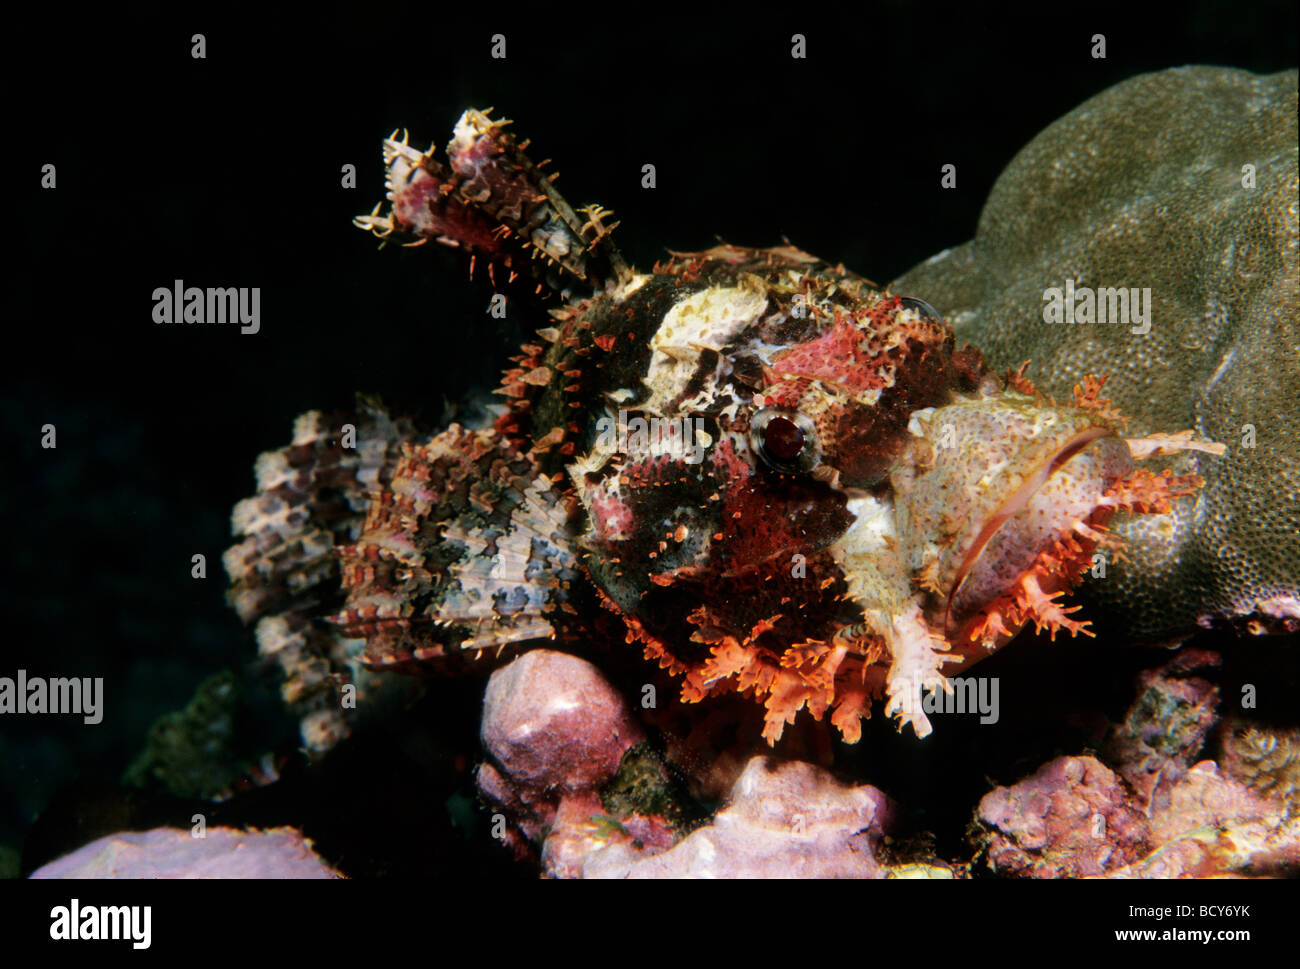 Bearded Scorpionfish (Scorpaenopsis) camouflaged in a coral reef, poisonous, dangerous, Similan Islands, Andaman - Stock Image